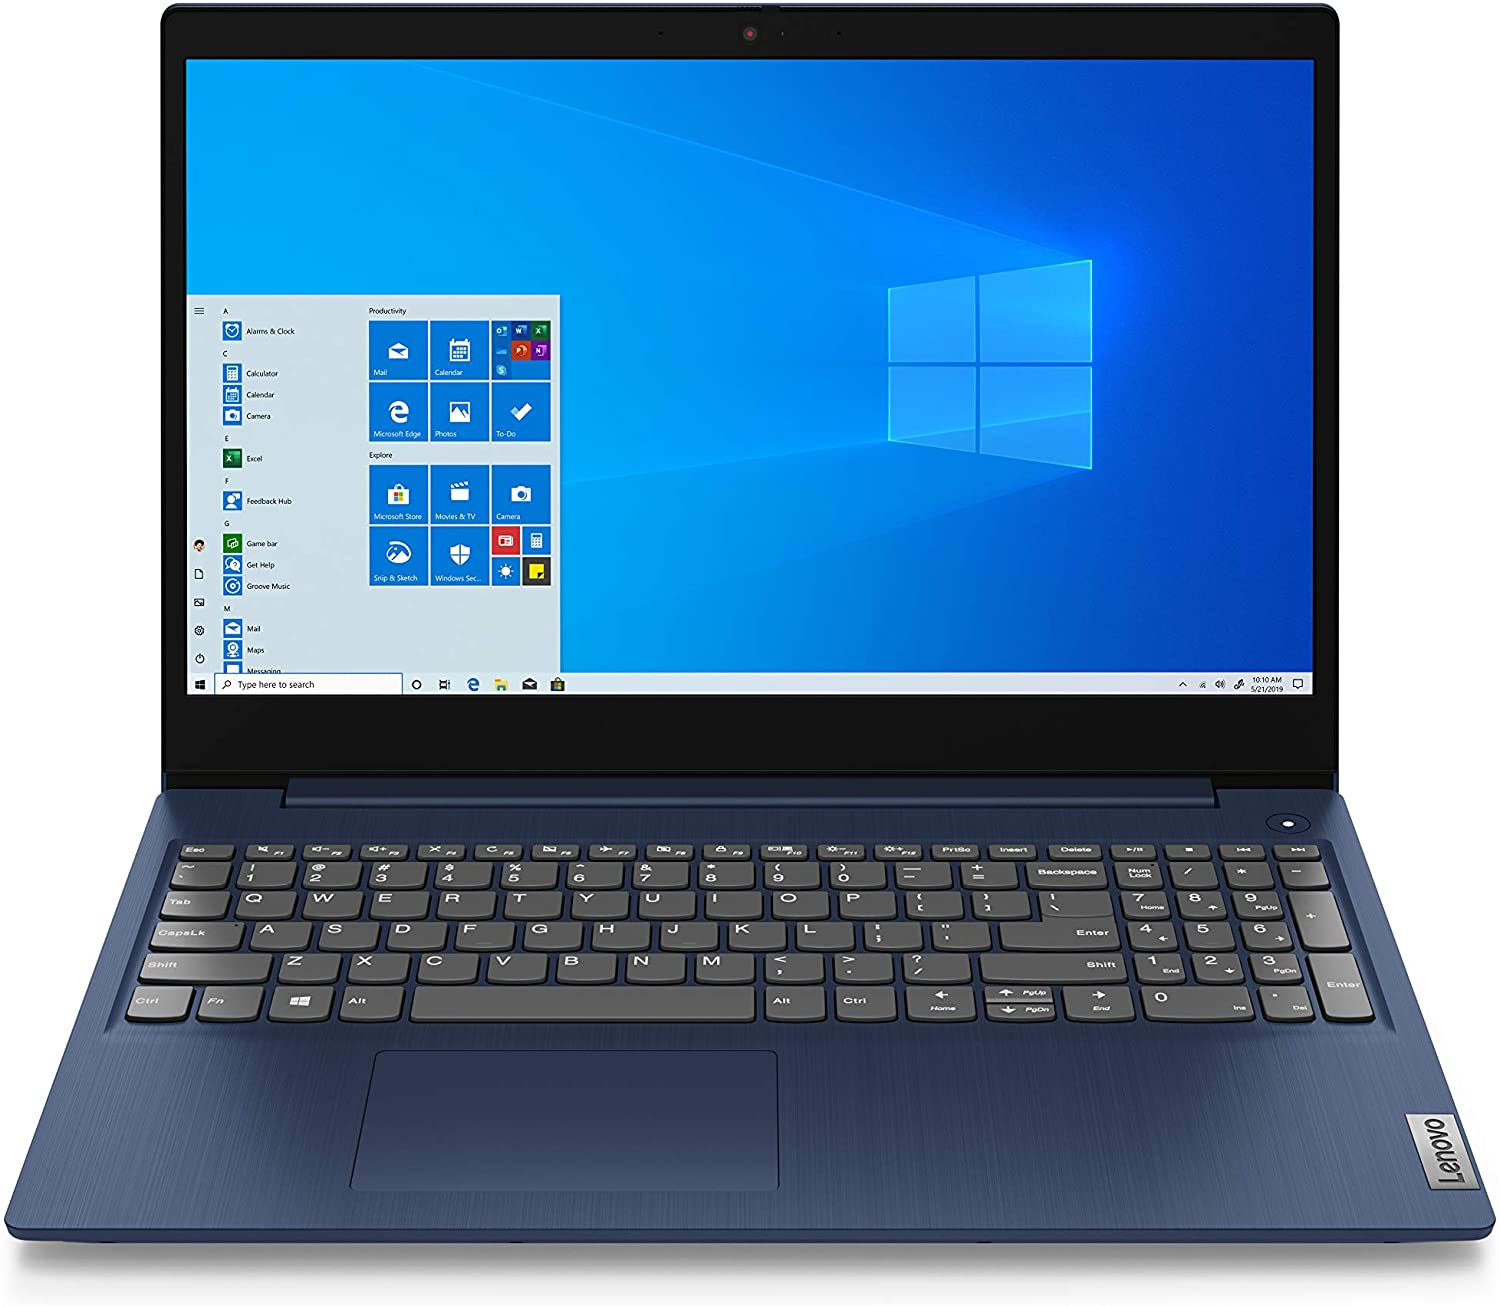 "2020 Lenovo IdeaPad 3 15.6"" HD High Performance Laptop, Intel Core i5-1035G1 Quad-Core Processor, 8GB Memory, 256GB SSD, HDMI, Webcam, Wi-FI, Windows 10, Abyss Blue (Google Classroom Compatible)"